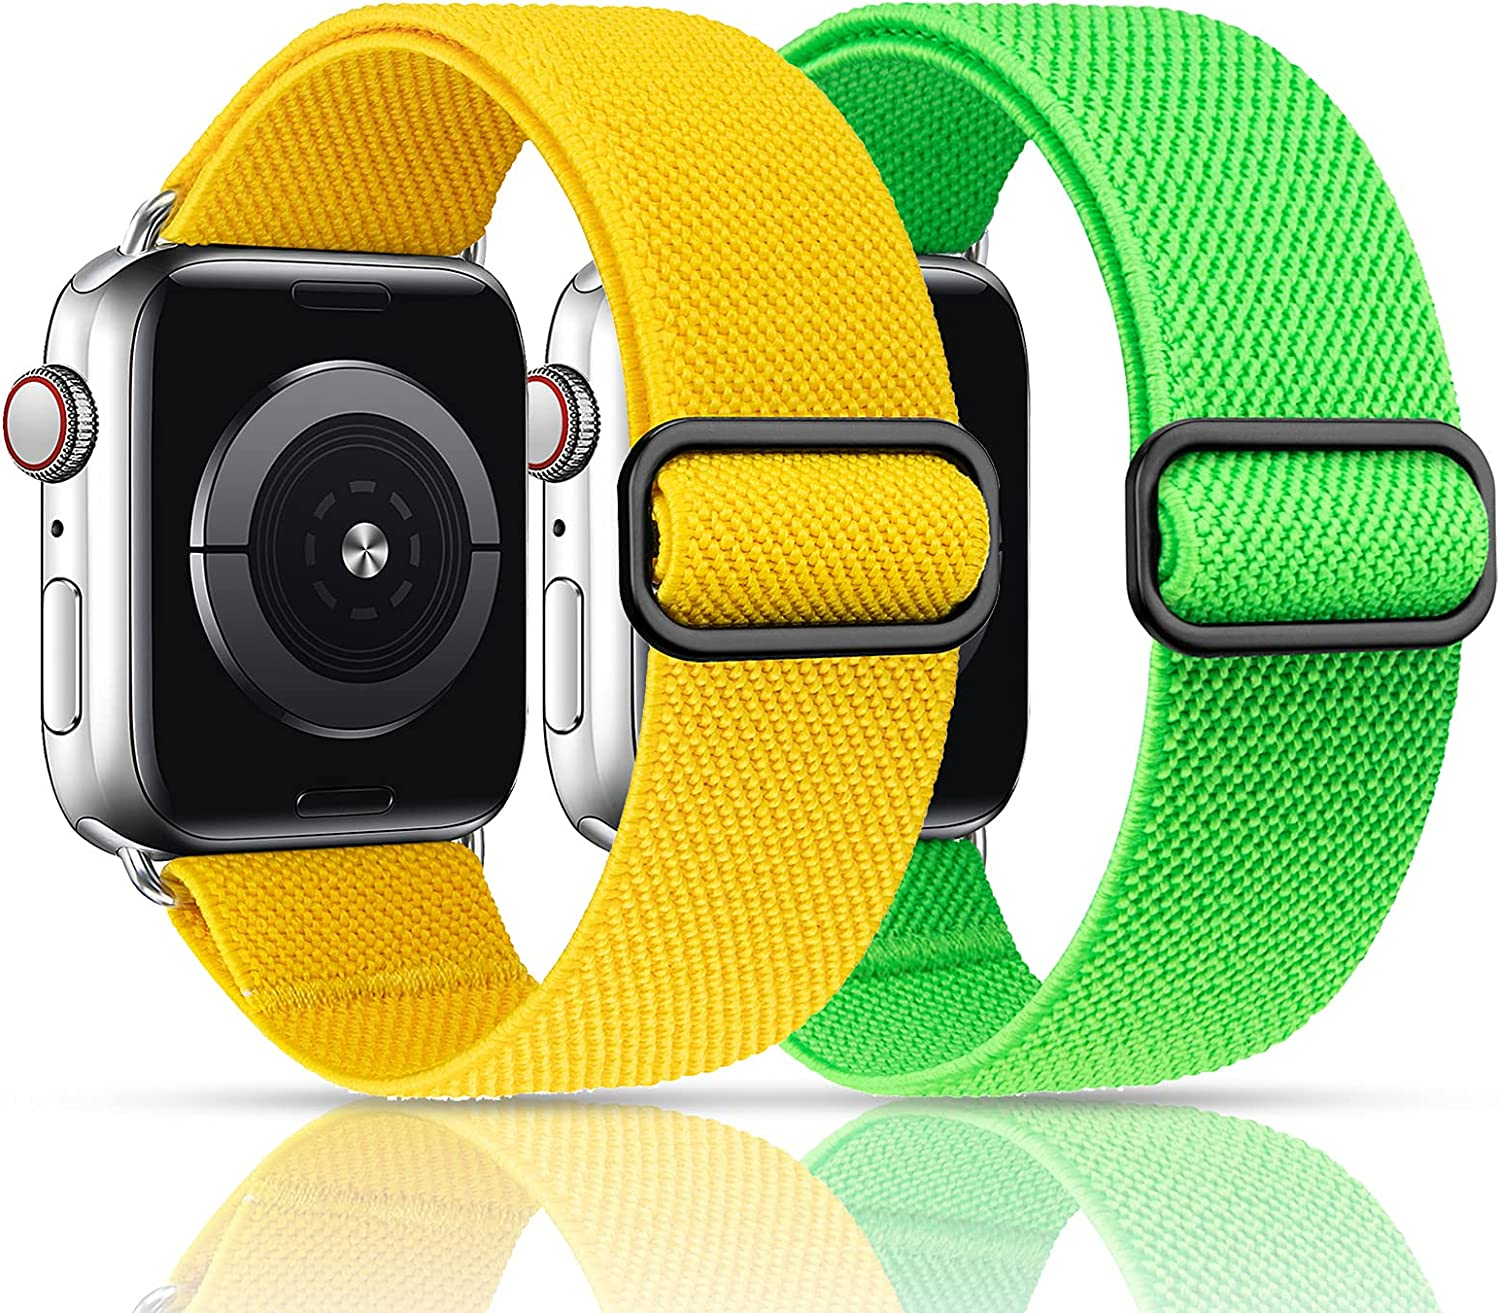 MEULOT Stretchy Nylon Solo Loop Band Compatible with Apple Watch Band 42mm 44mm 2-Pack Adjustable Braided Sport Women Men iWatch Series 6/5/4/3/2/1 SE 42mm 44mm Yellow/Green